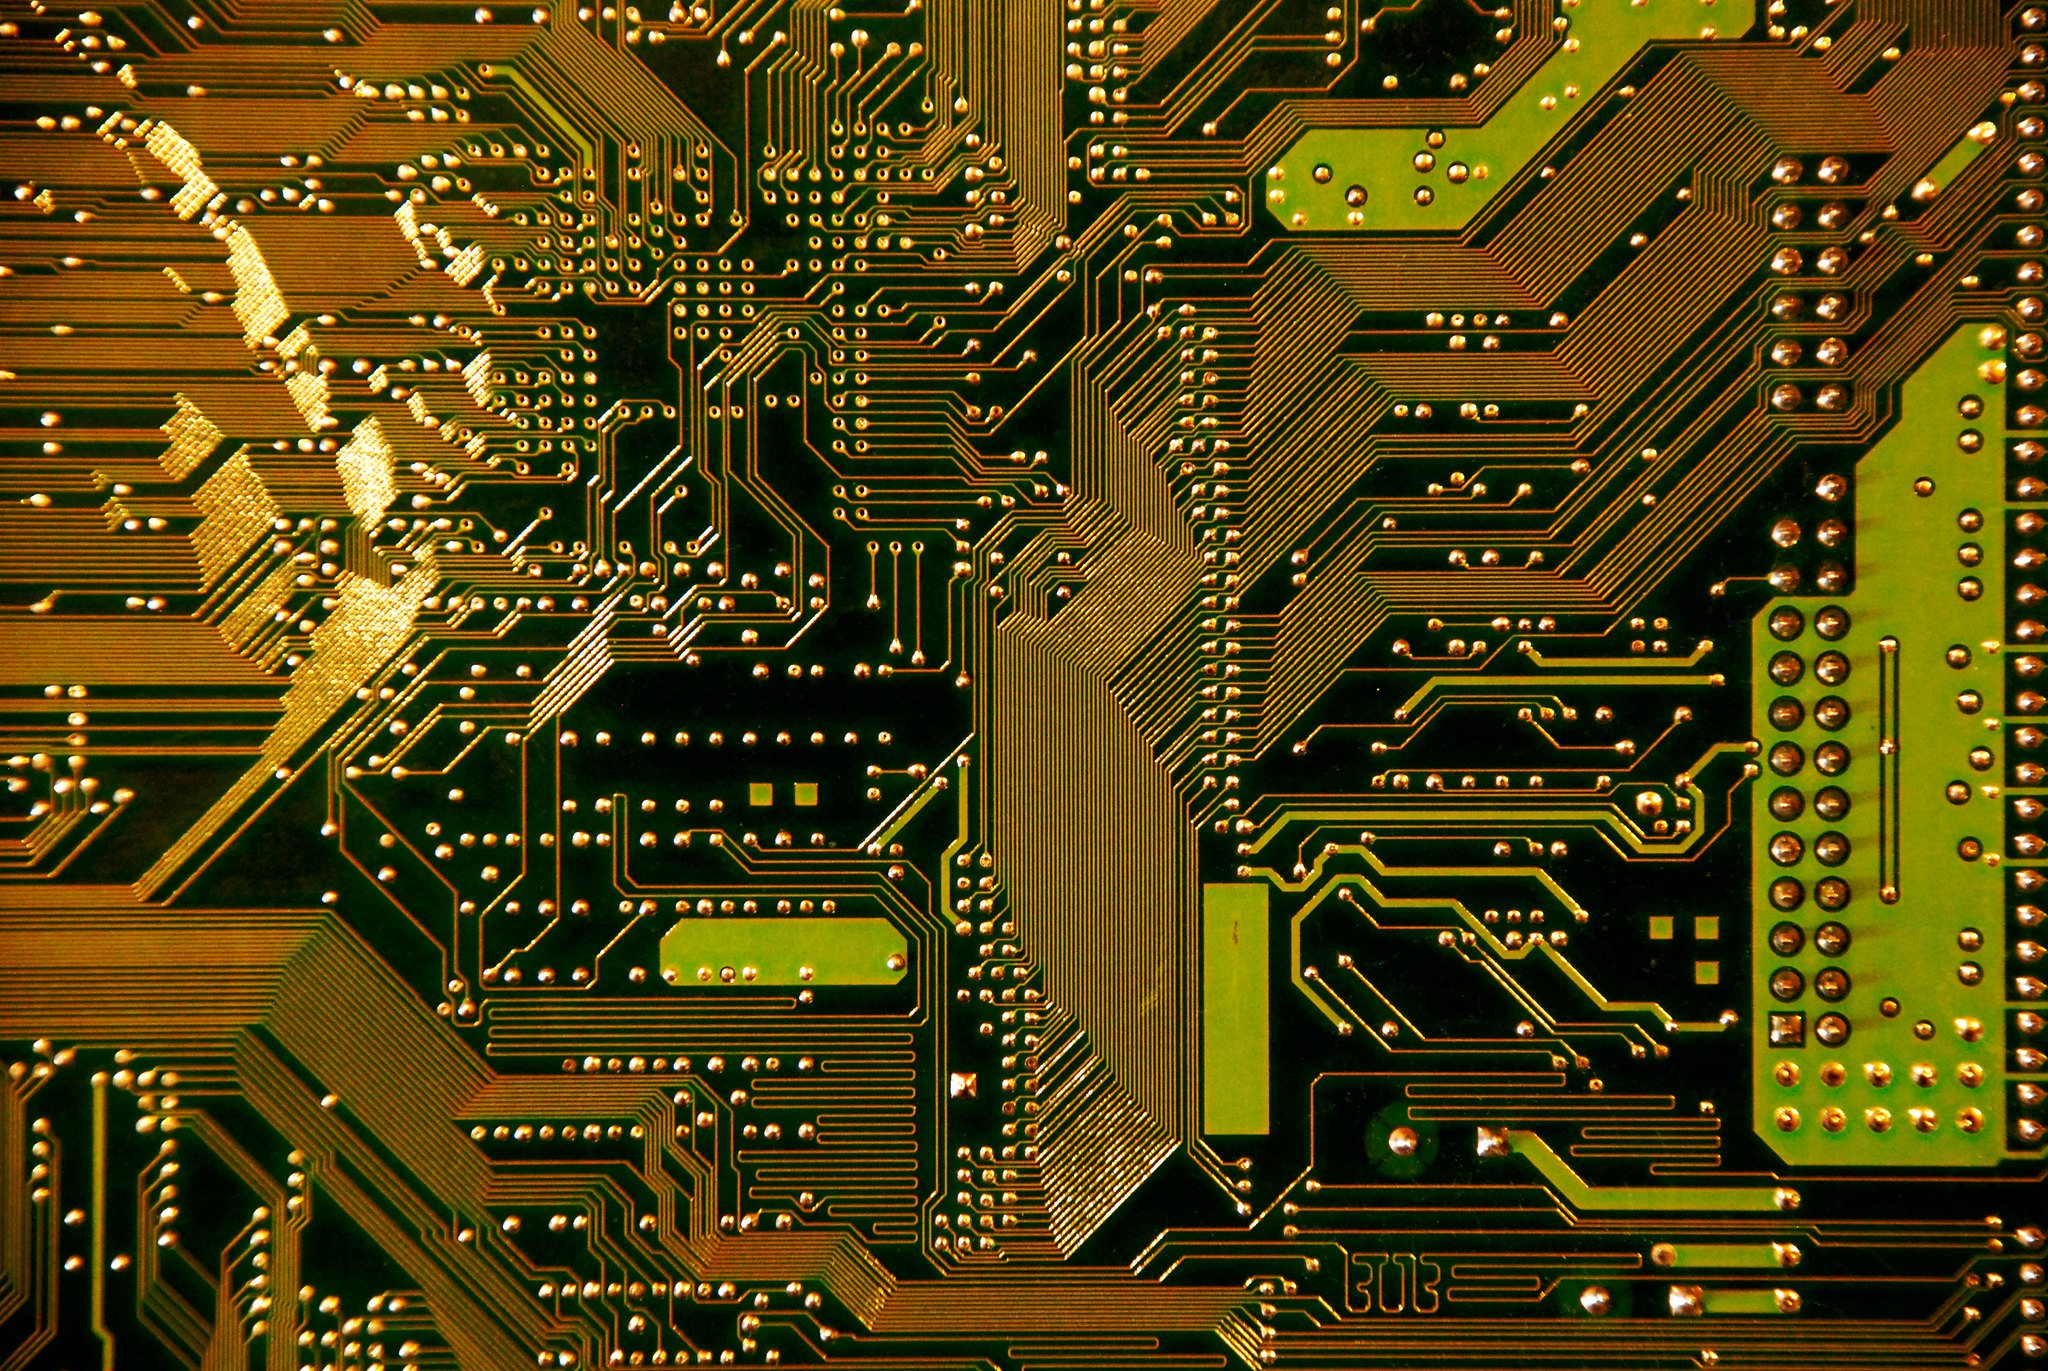 What does Biden's Presidency Mean for the Semiconductor Industry?